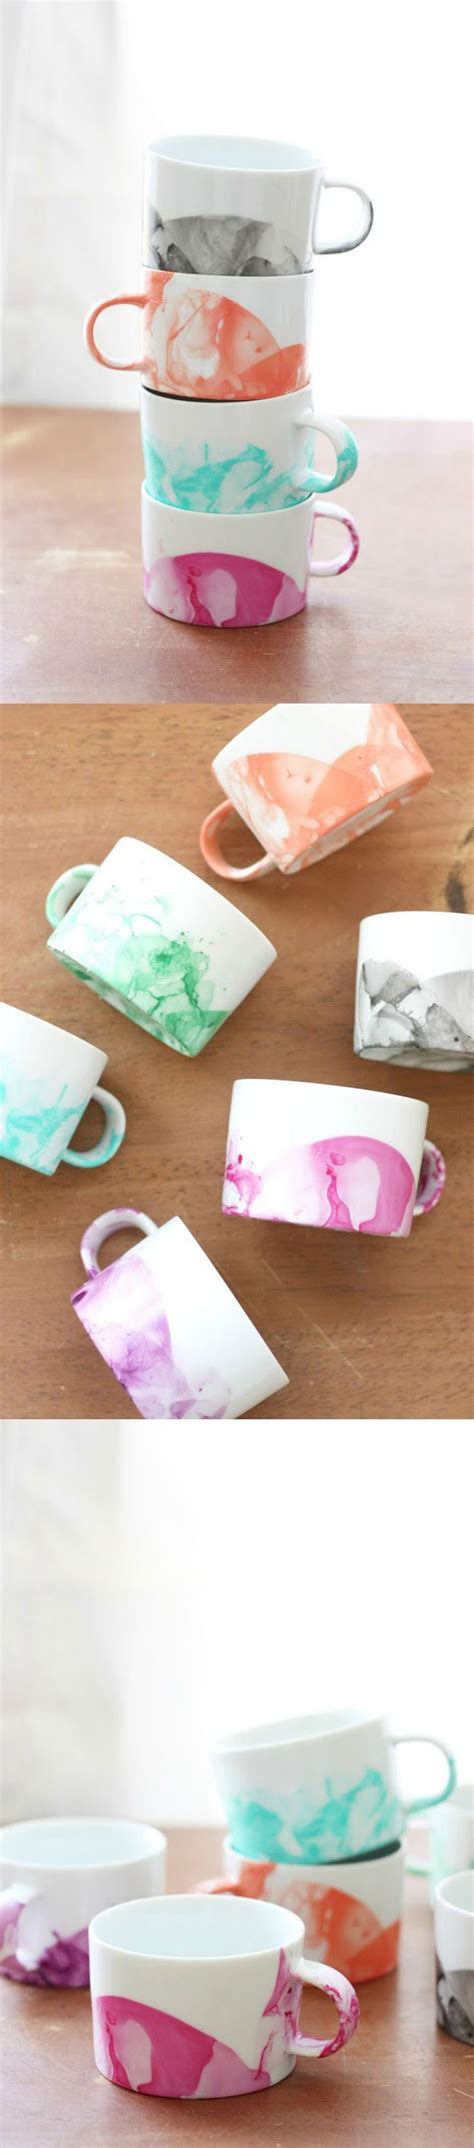 47 Fun Pinterest Crafts That Aren't Impossible Diy